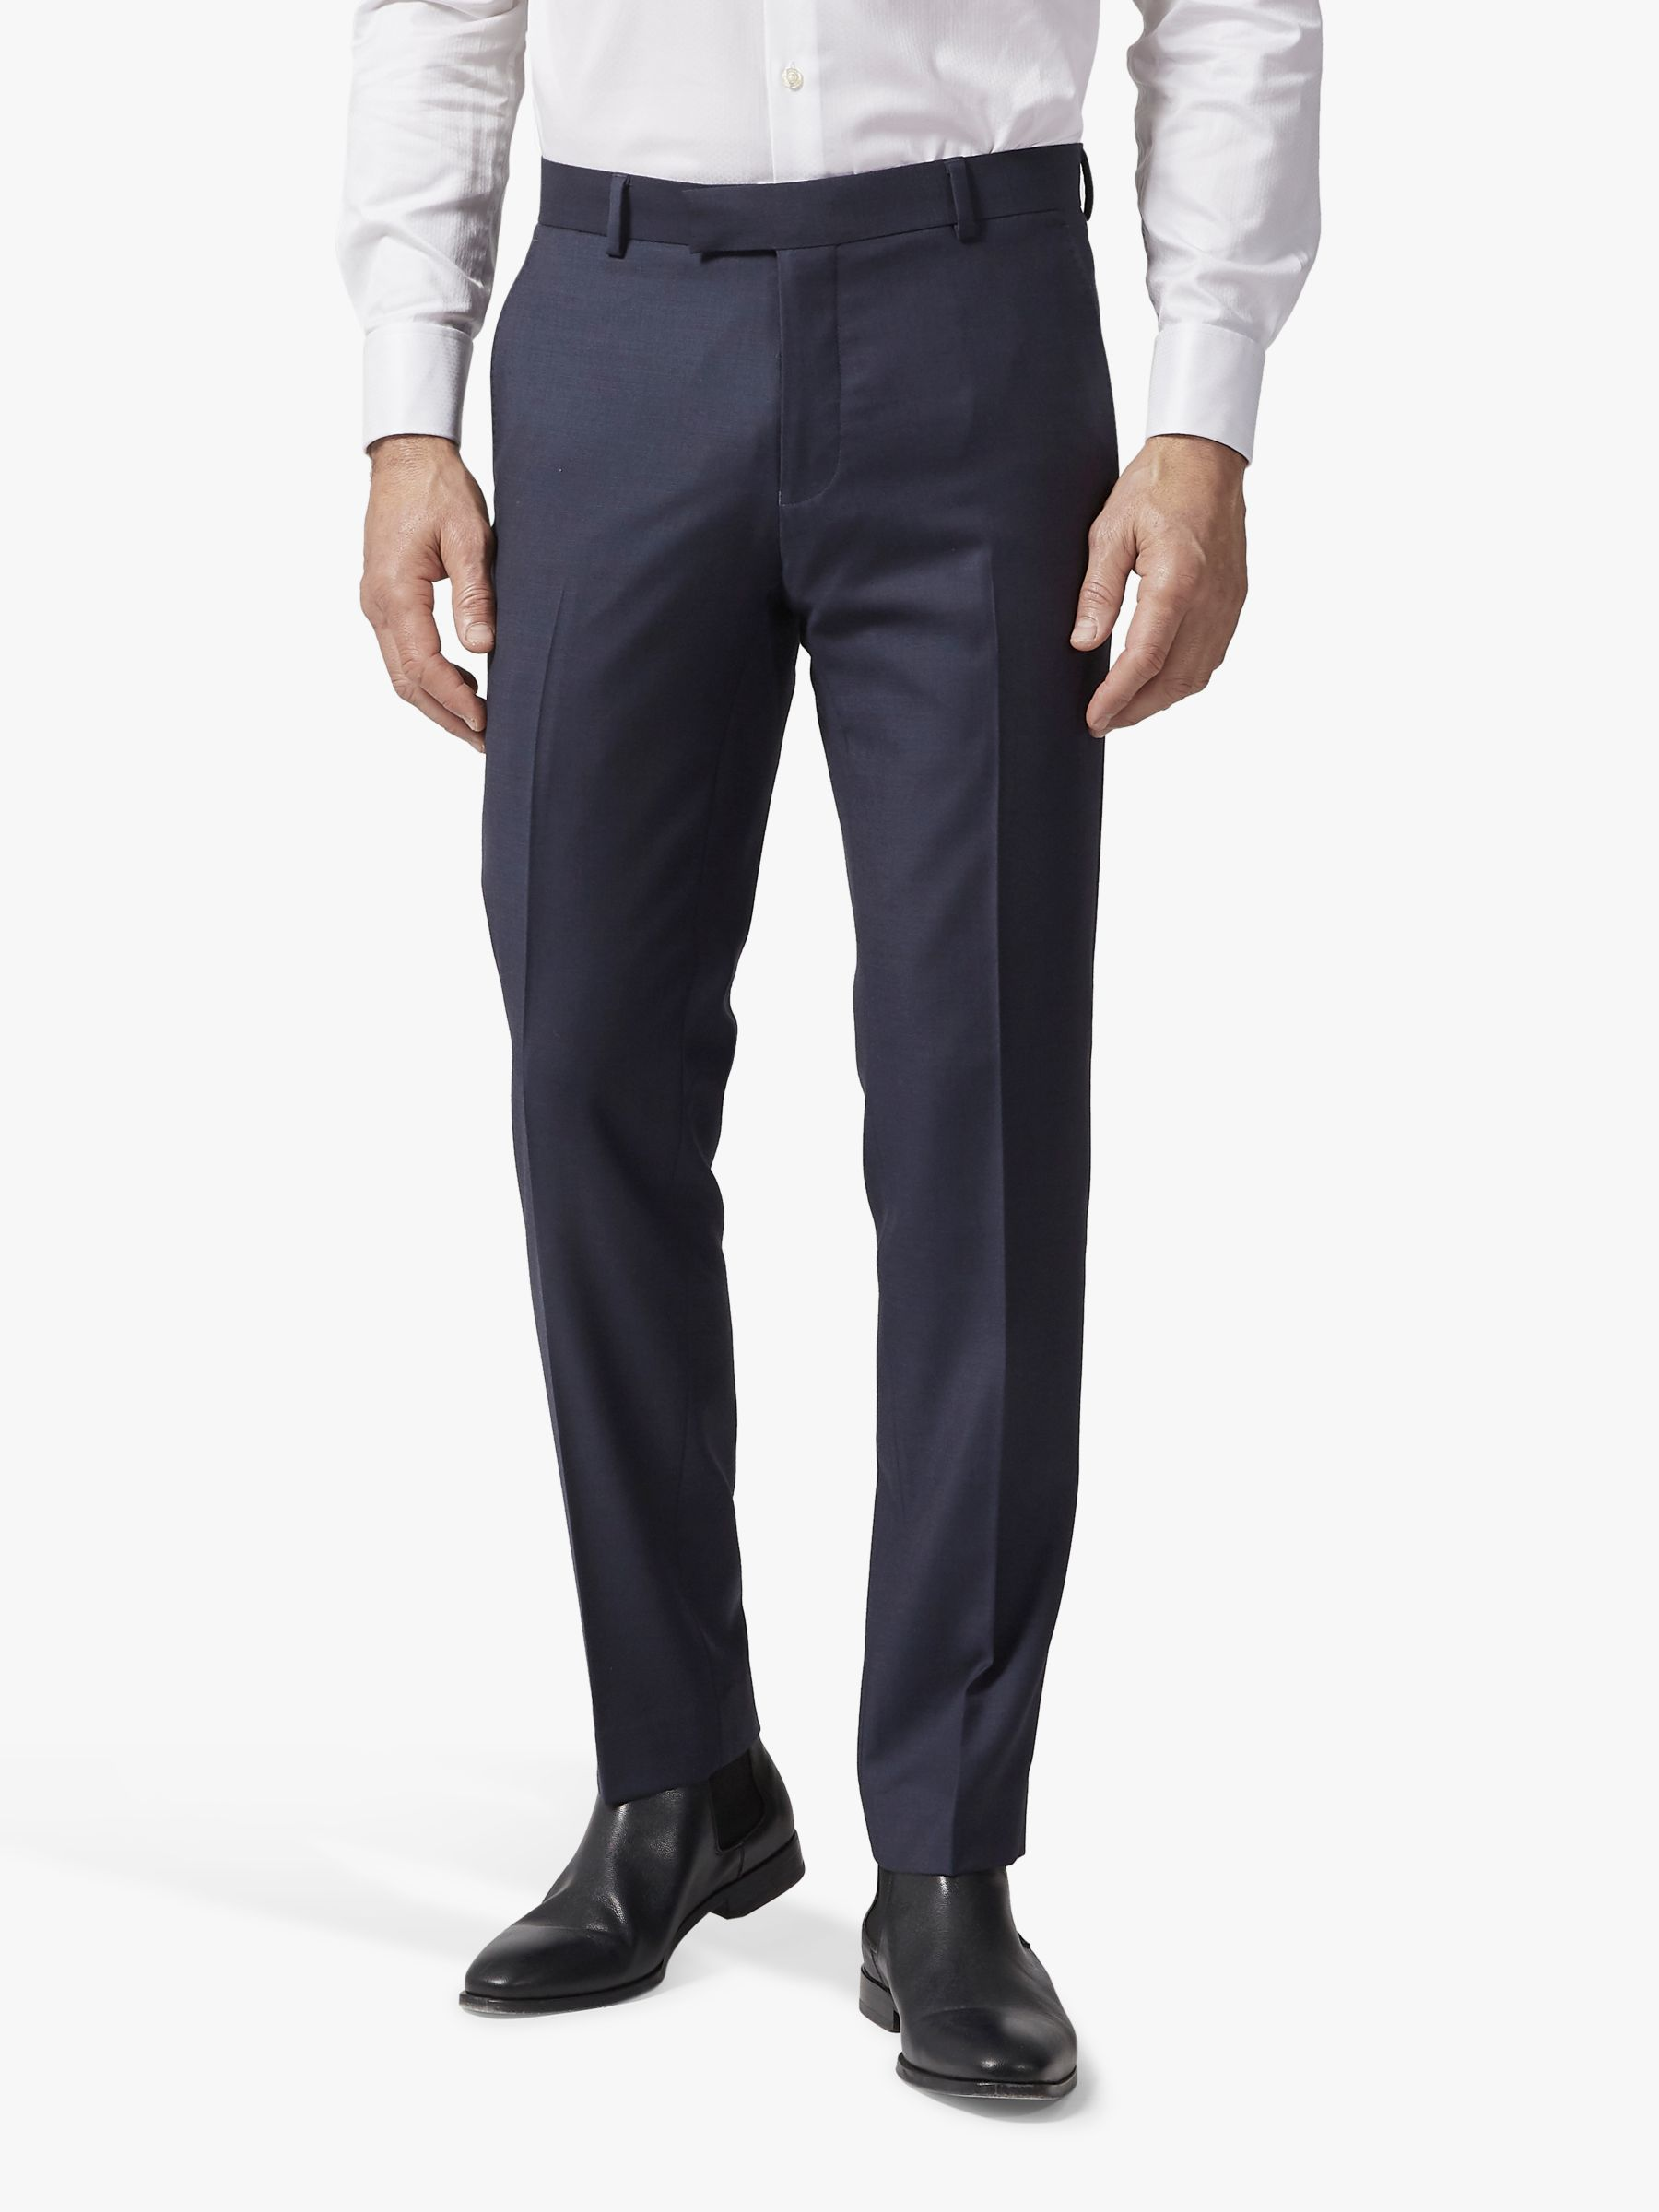 Richard James Mayfair Richard James Mayfair Pick and Pick Suit Trousers, Navy